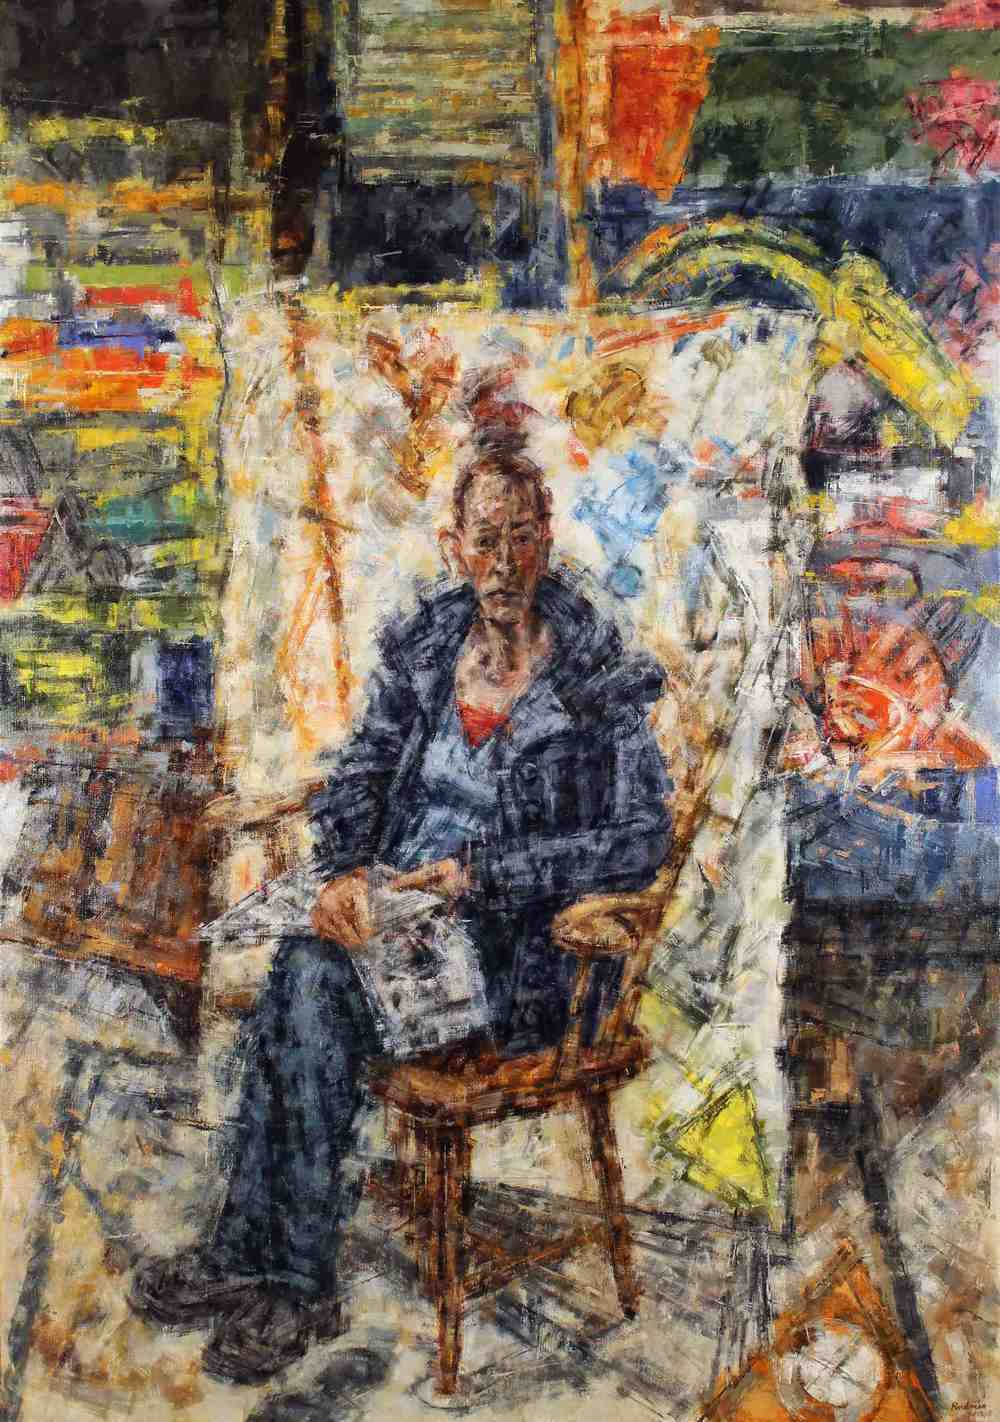 366_Rudman_Christiane Seated_Oil_2015.jpg